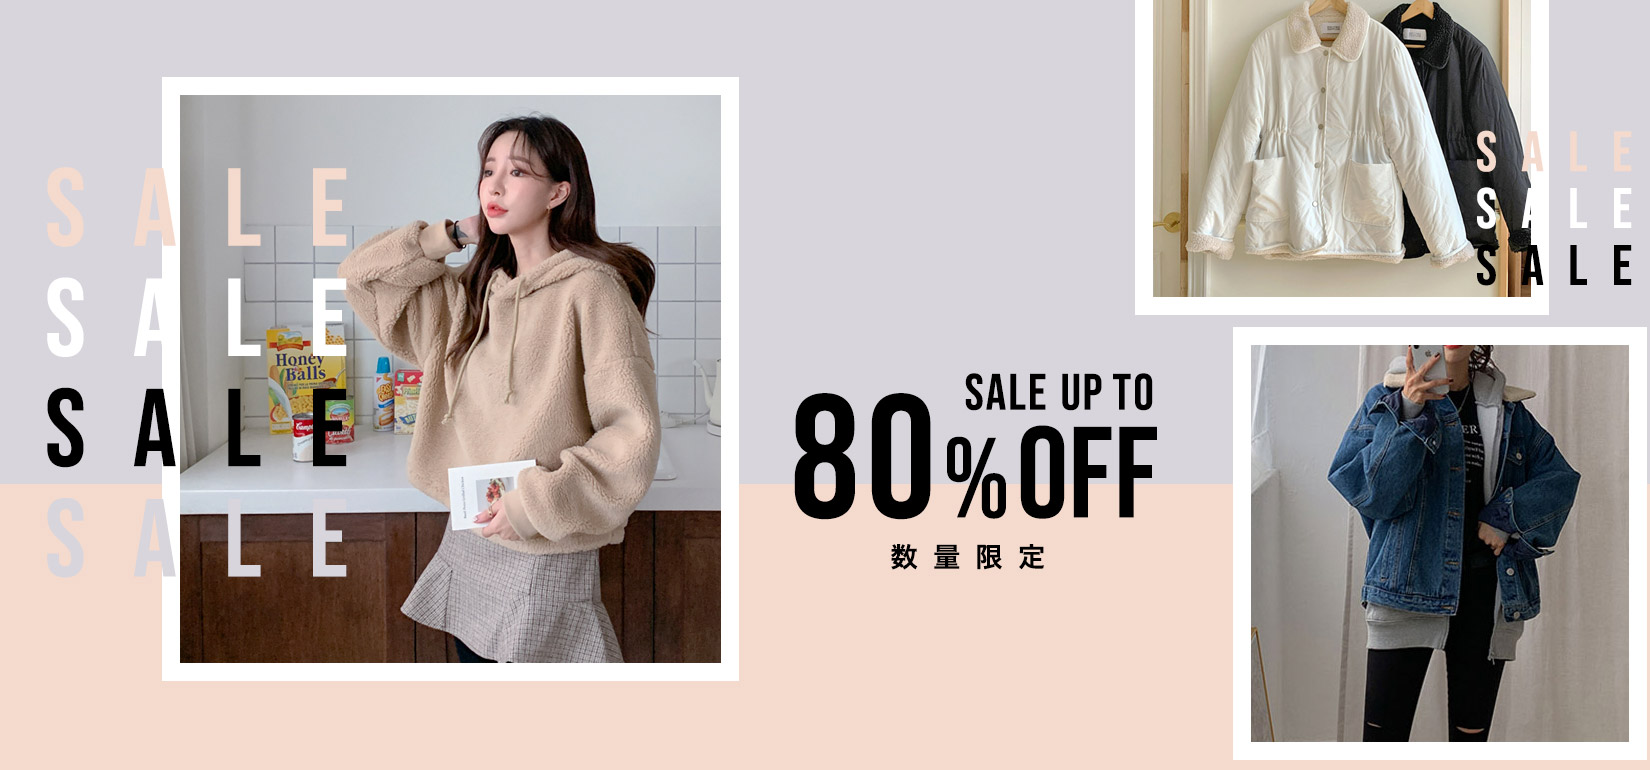 SALE UP TO 80% OFF